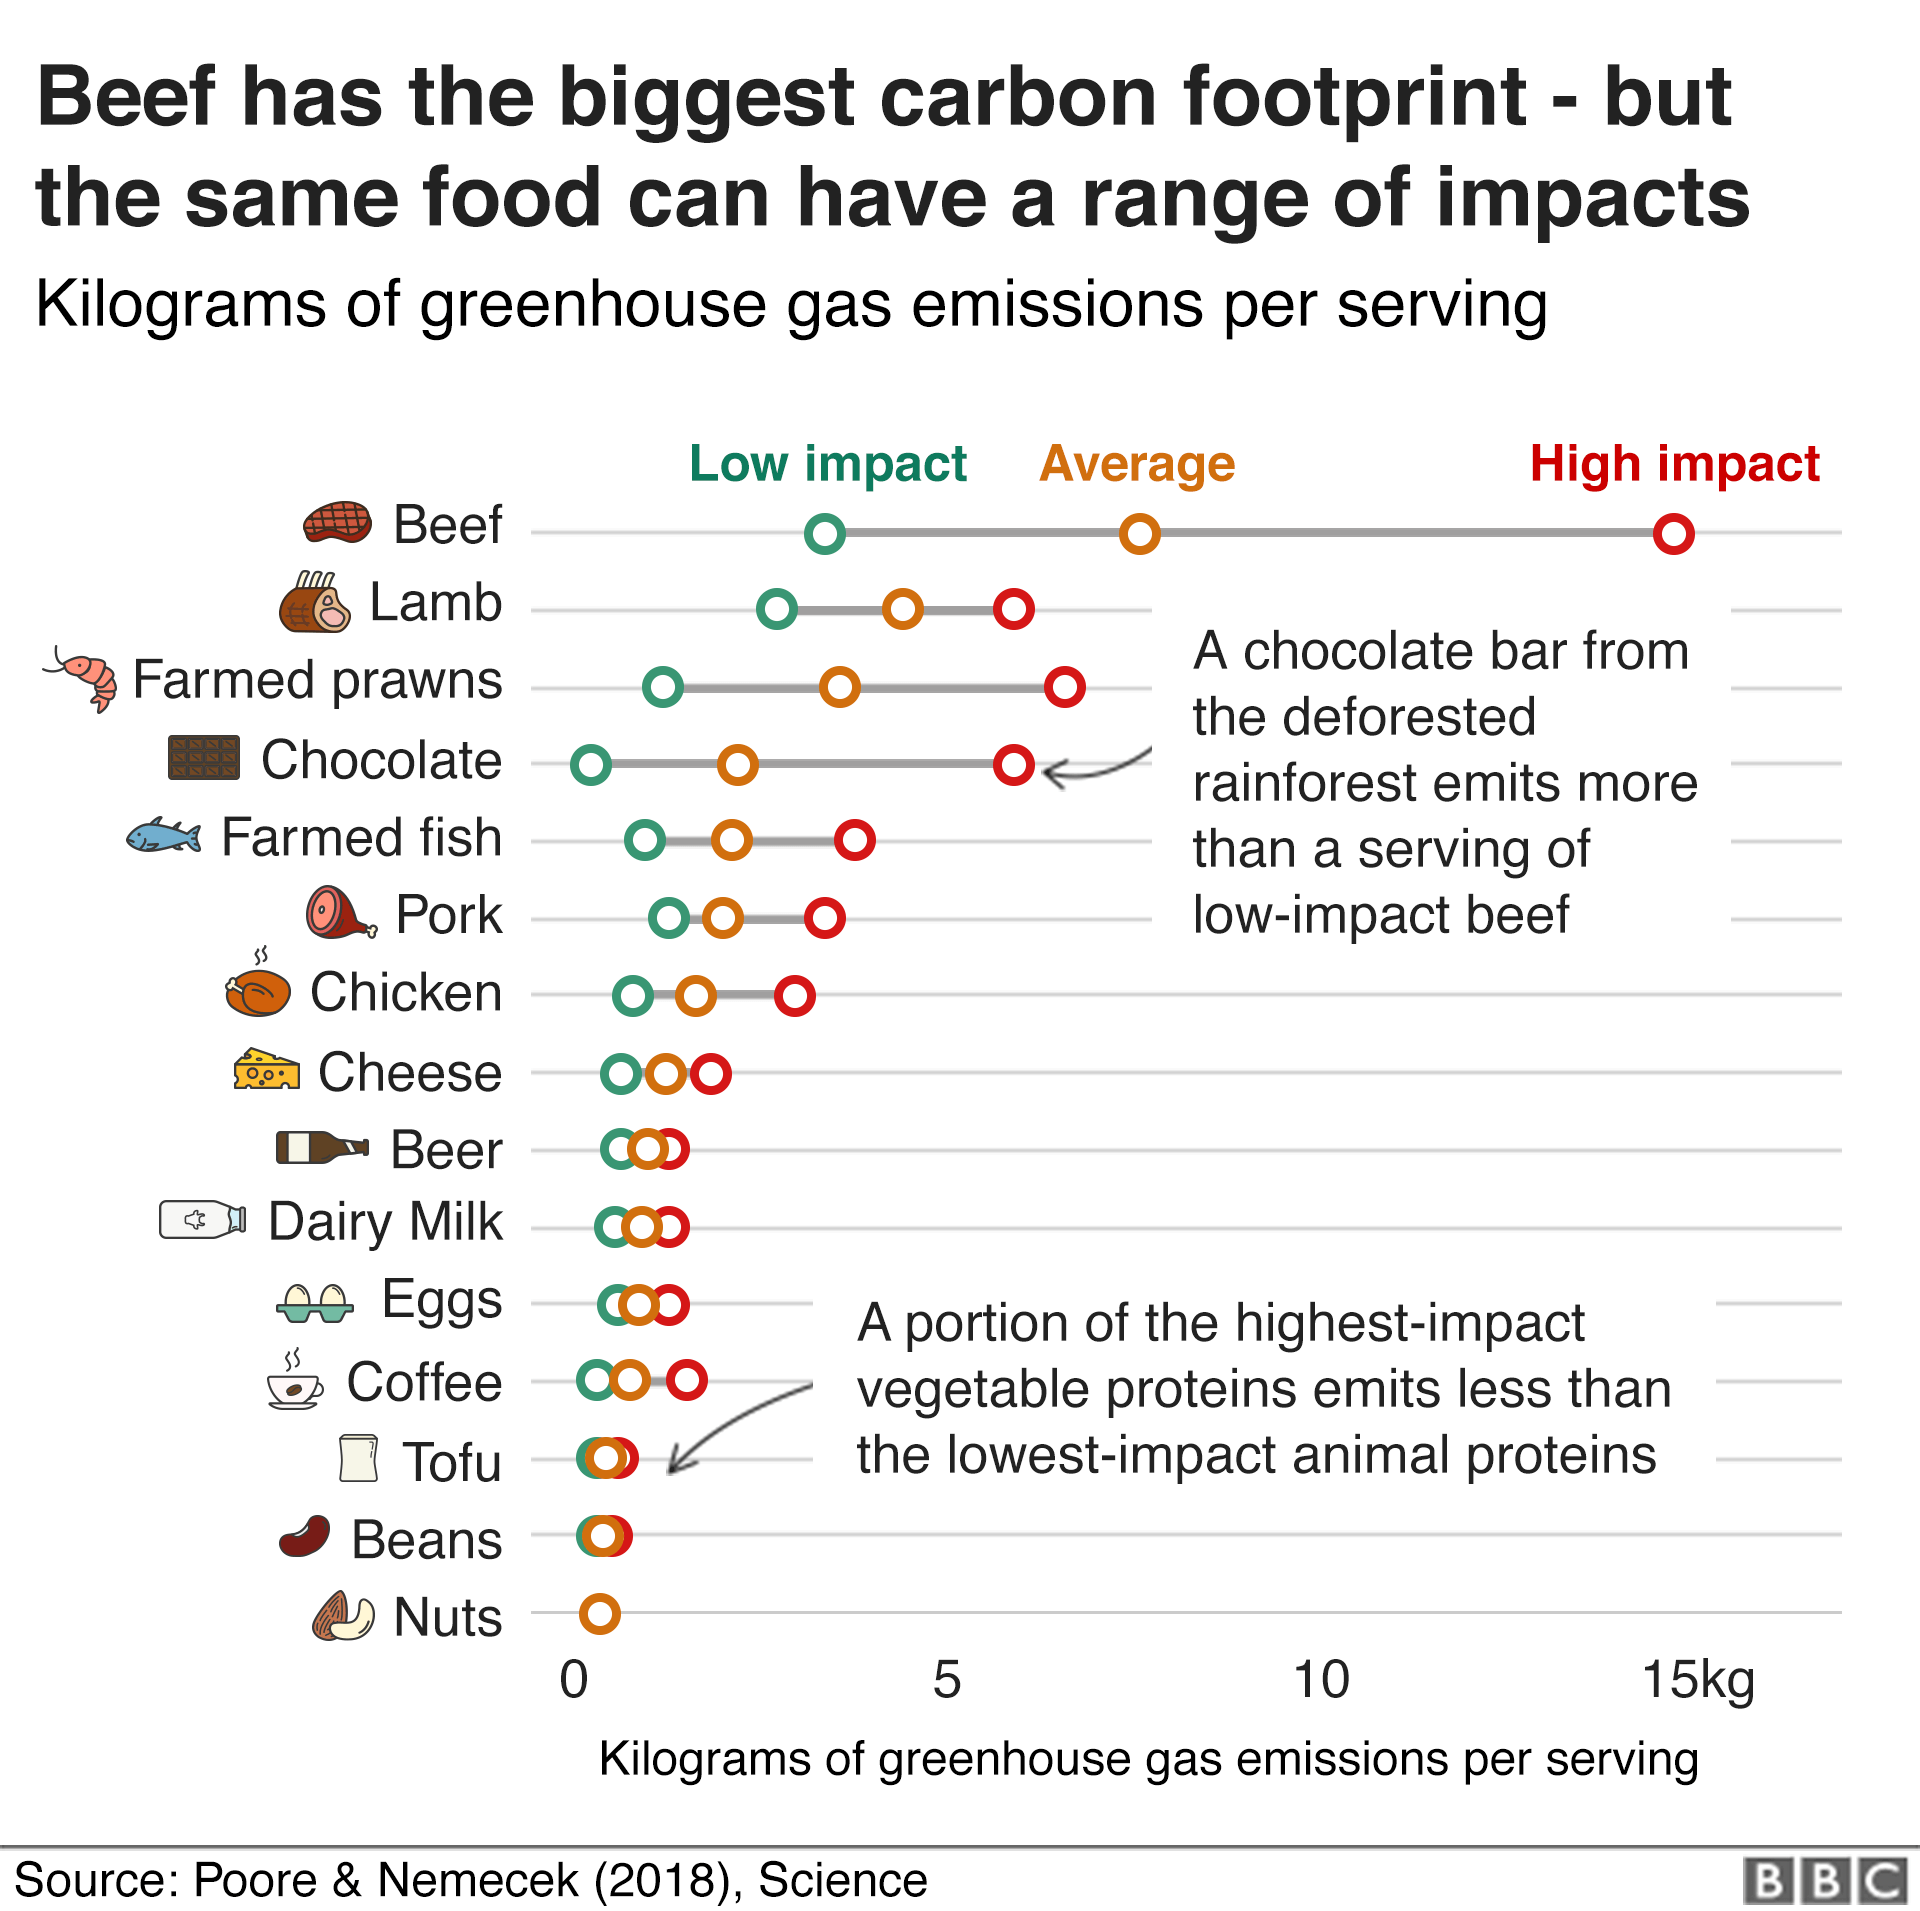 BBC food footprint chart